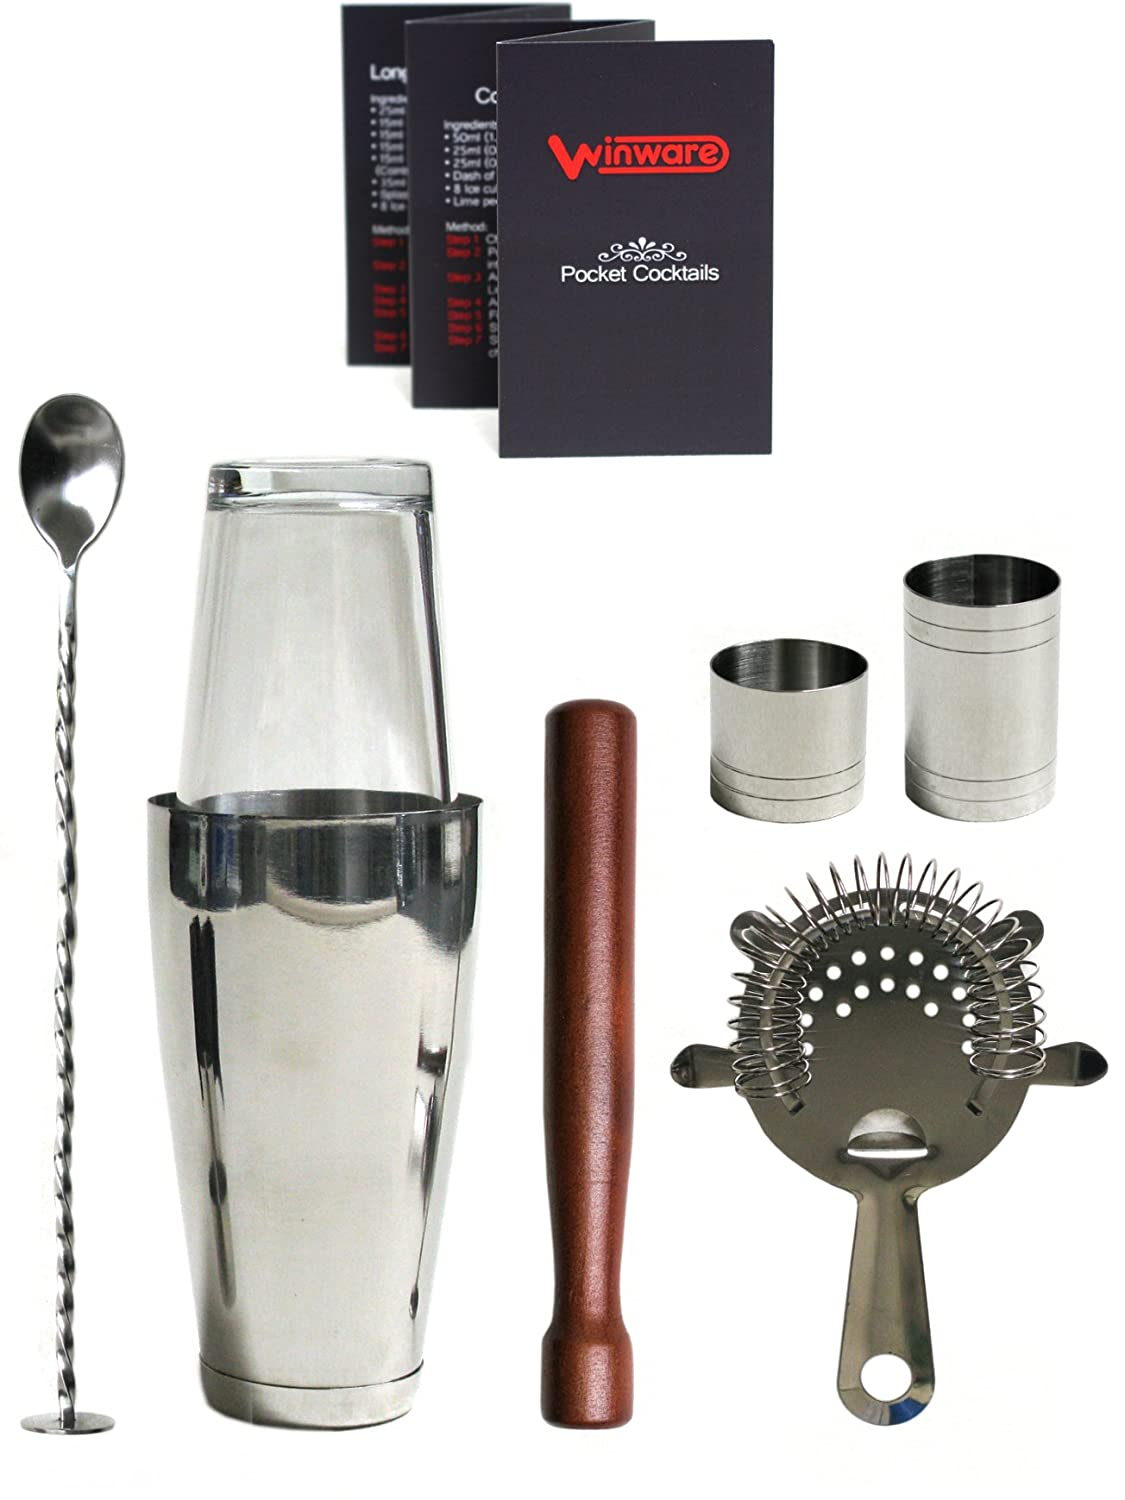 Winware Boston Cocktail Shaker Gift Set and Pocket Cocktail Guide with Winware Gift Box (6 Items) WIN-WARE SYNCHKG036687